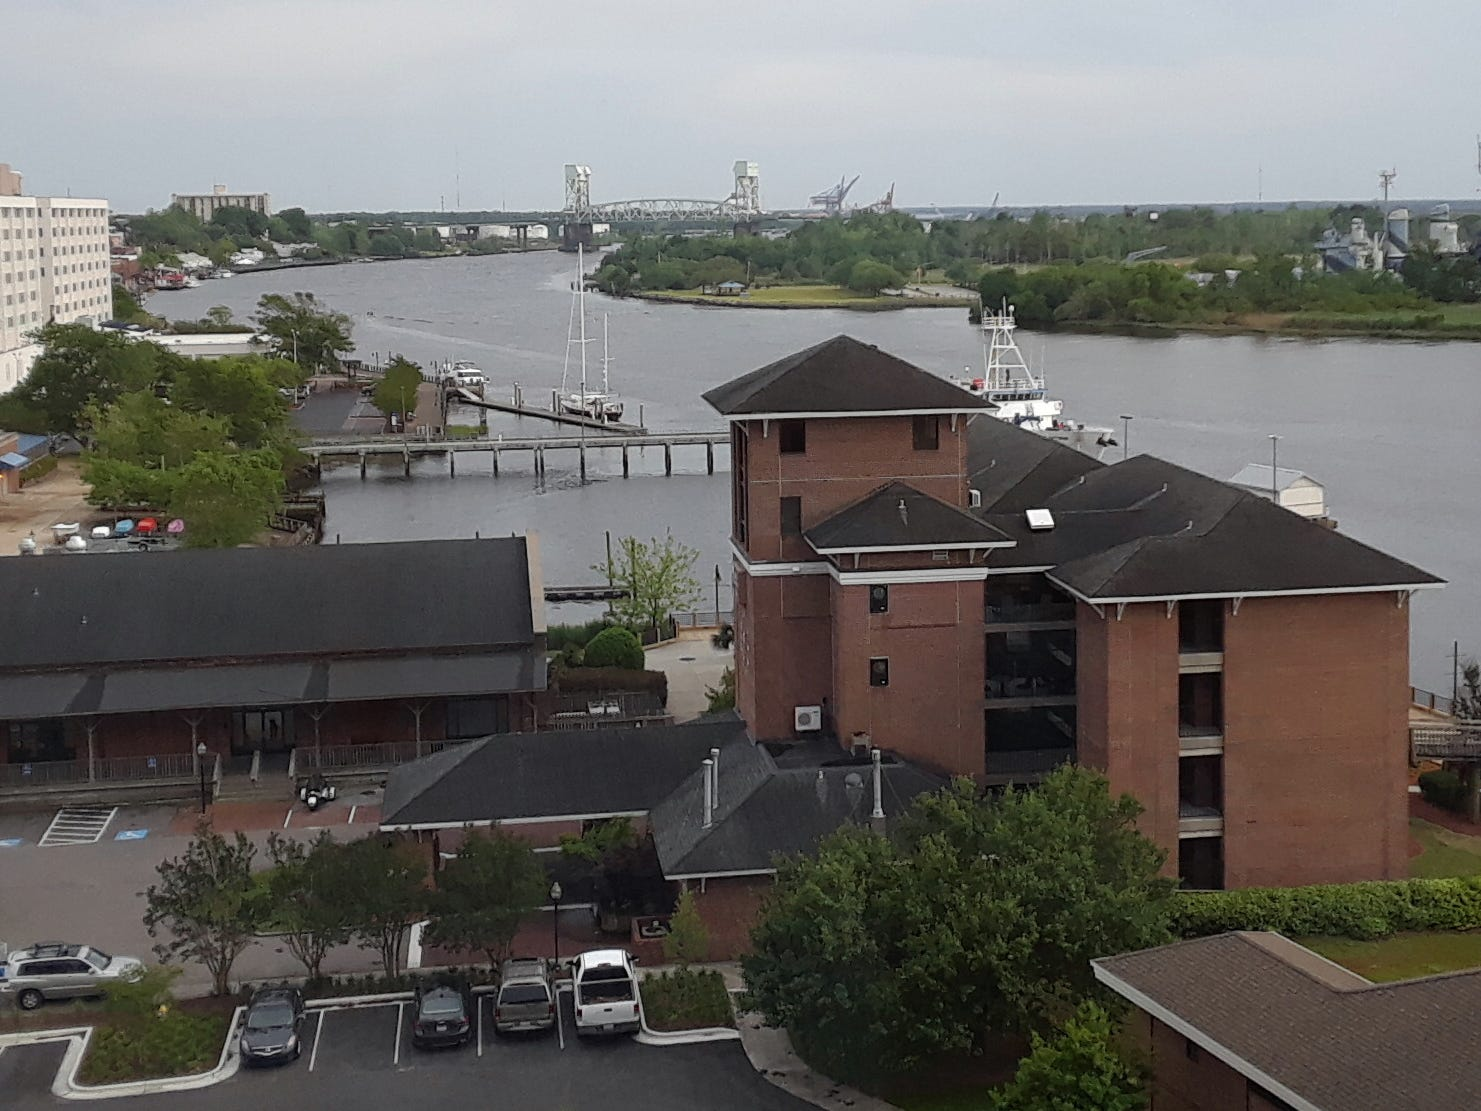 Wilmington grew as a transportation hub in the 1800s, a place where oceangoing ships linked with rail lines. That low-lying area along the Cape Fear River is now the site of hotels, condo high-rises and a convention center.